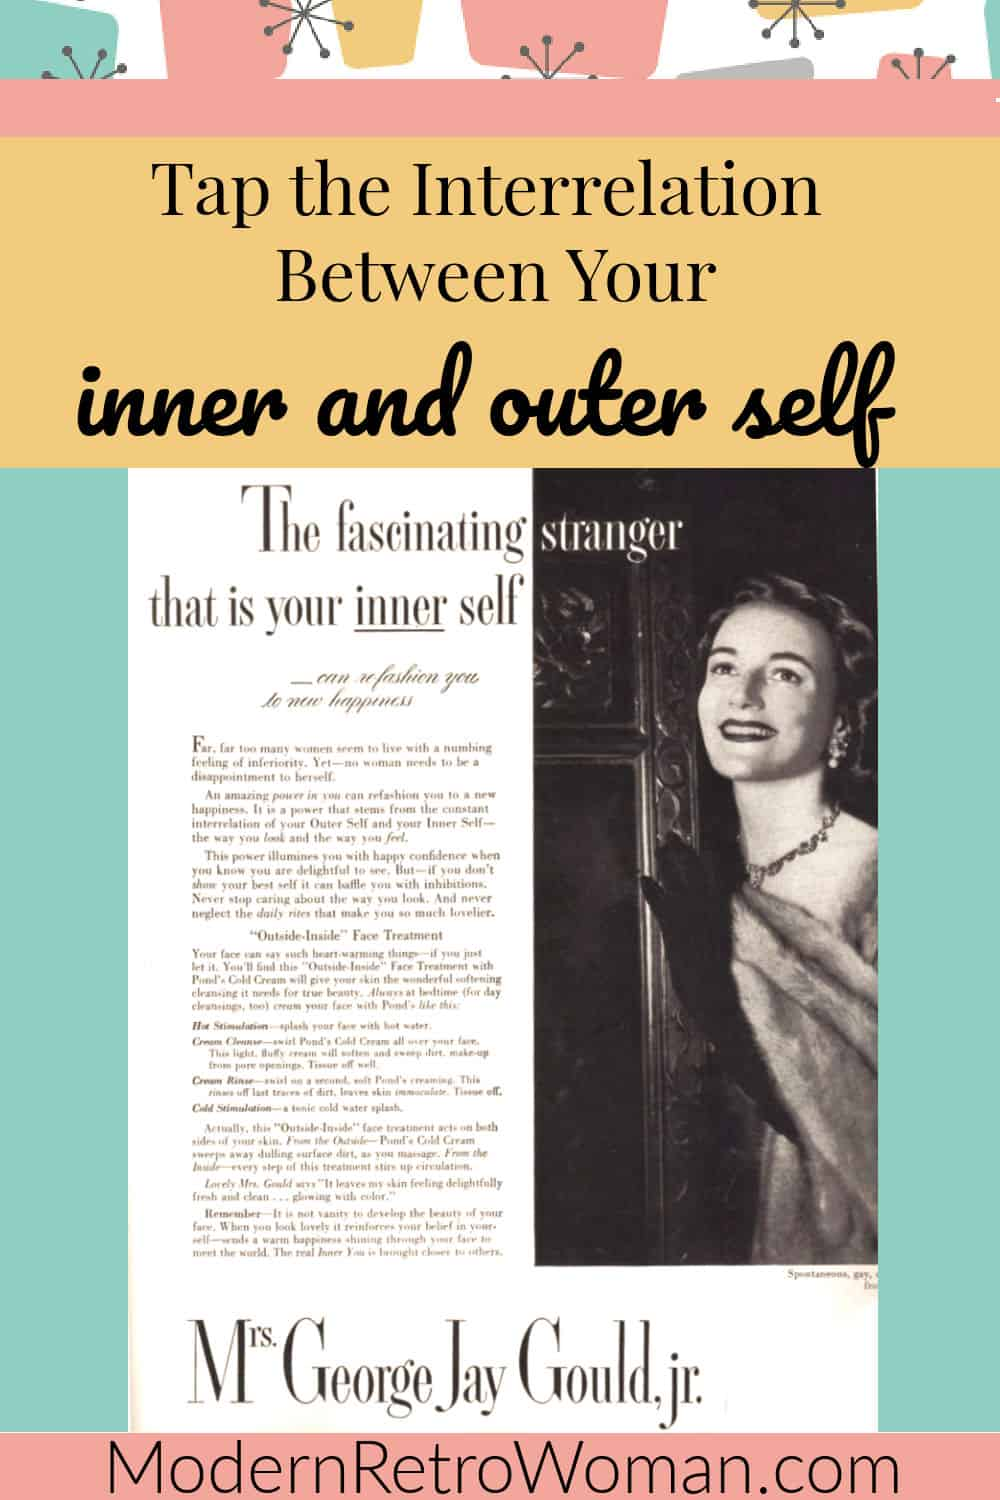 The Interrelation Between Inner and Outer Self